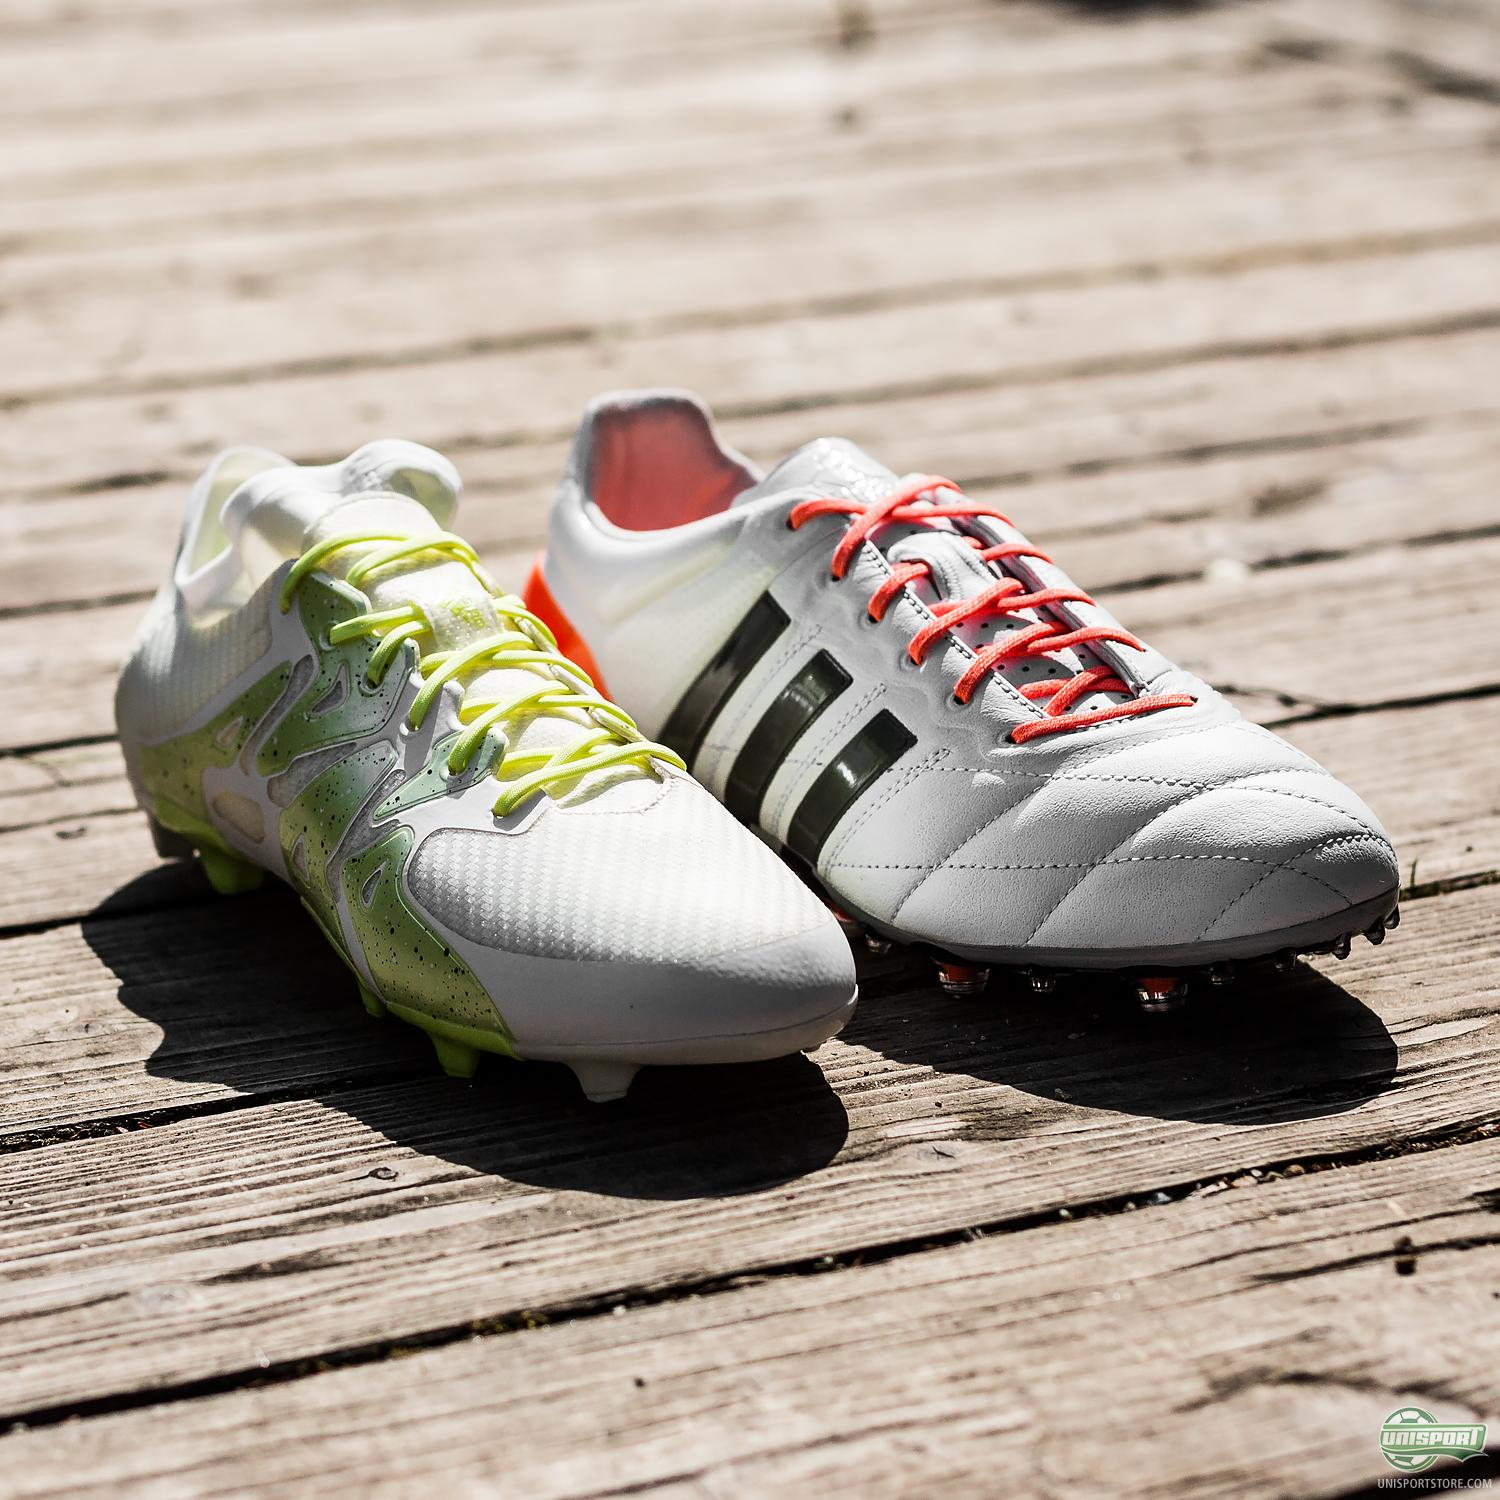 adidas design football boots for the s world cup